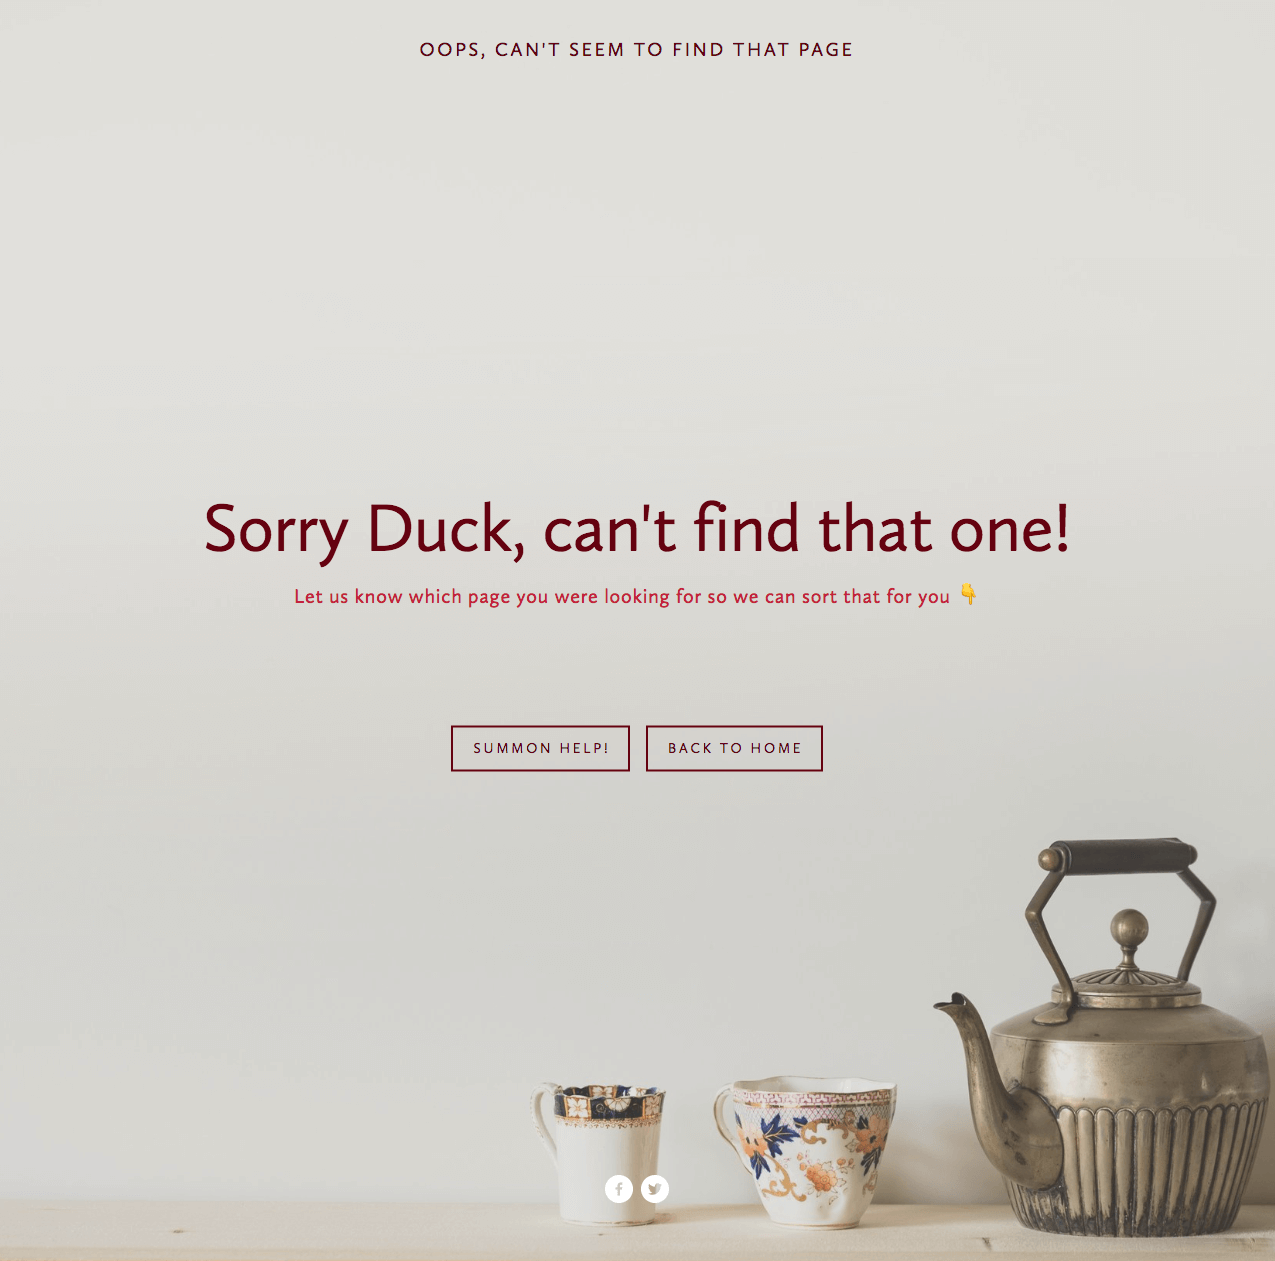 Small touches make a big difference - the 404-error page